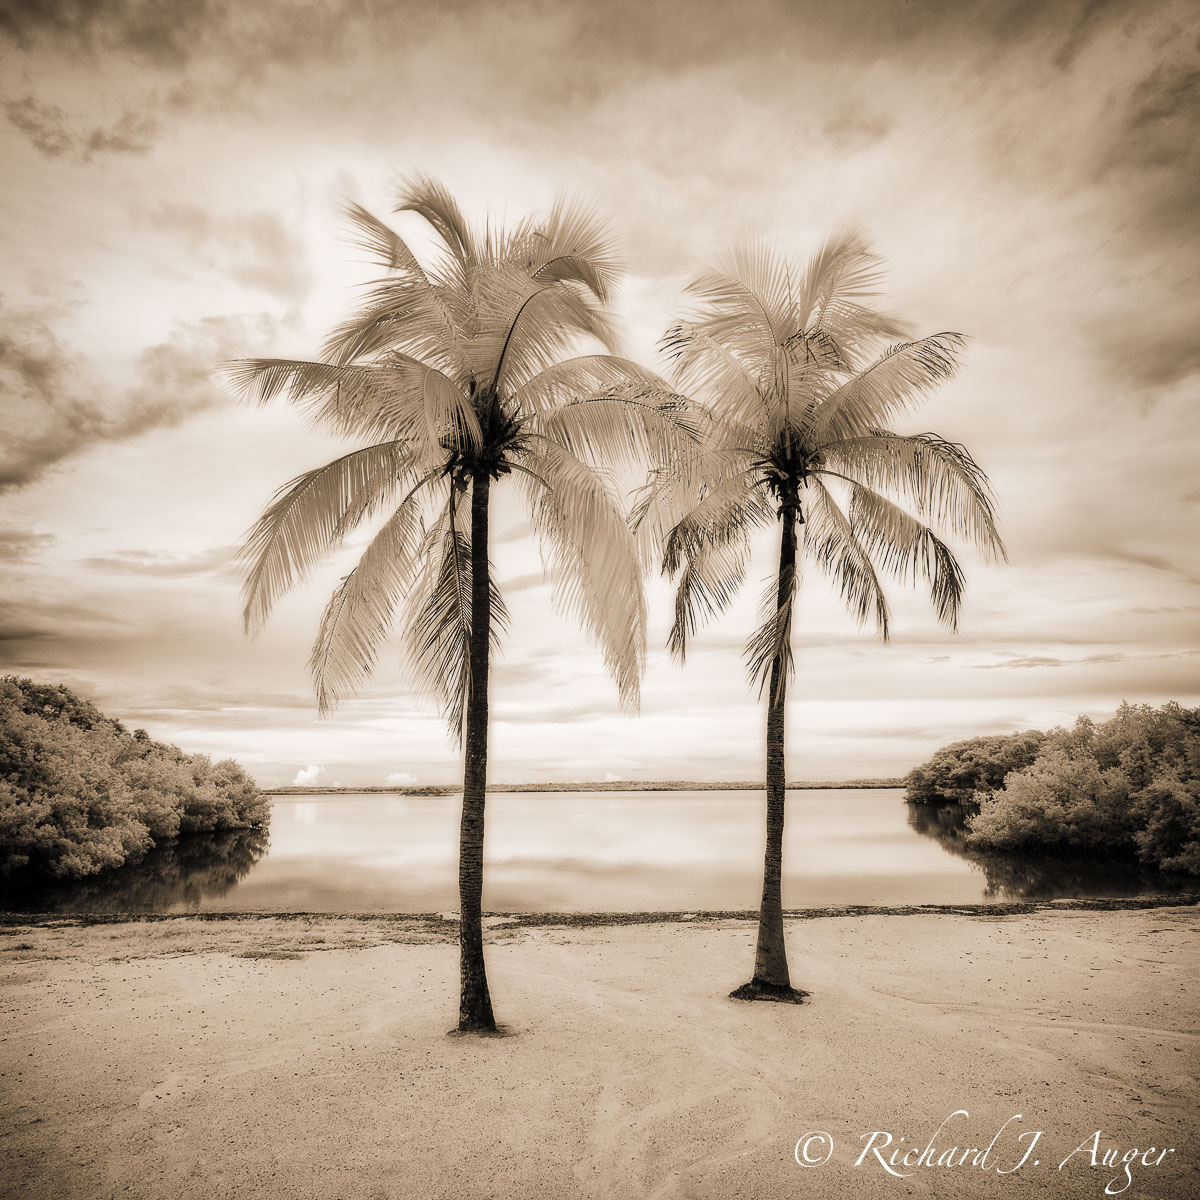 Florida Keys, Palm Trees, Water, Mangroves, Calm, Peaceful, infrared, landscape, photographer, art, sepia tone, black and white